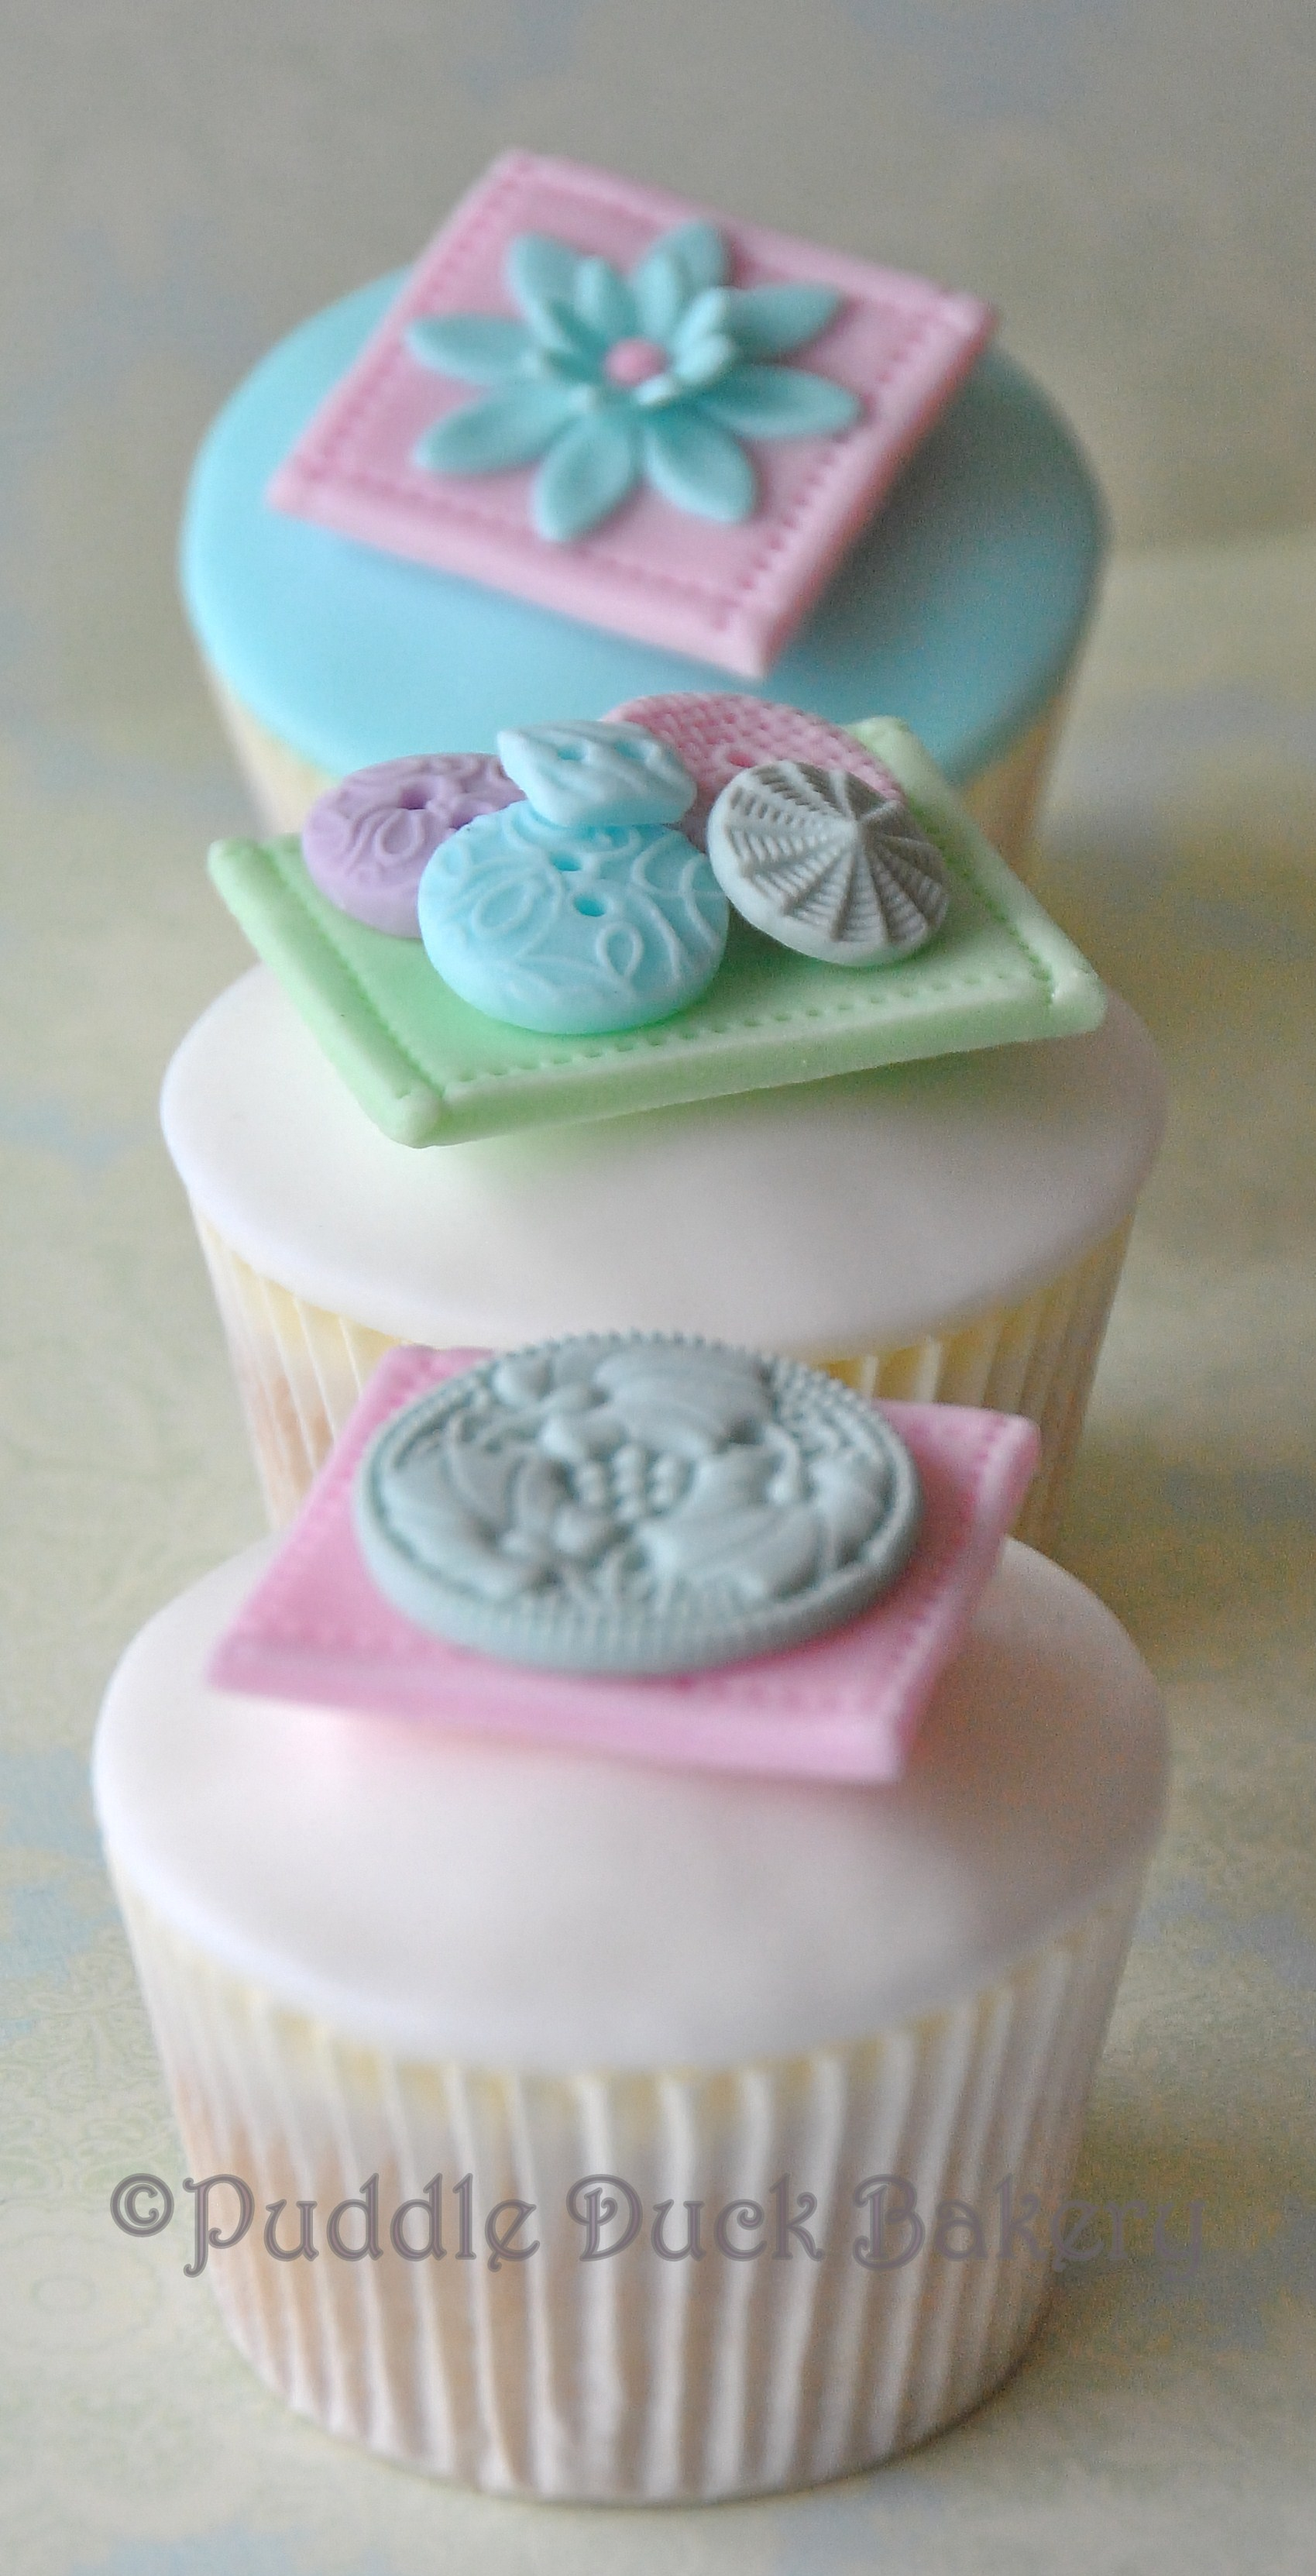 An example of a button on a cupcake.